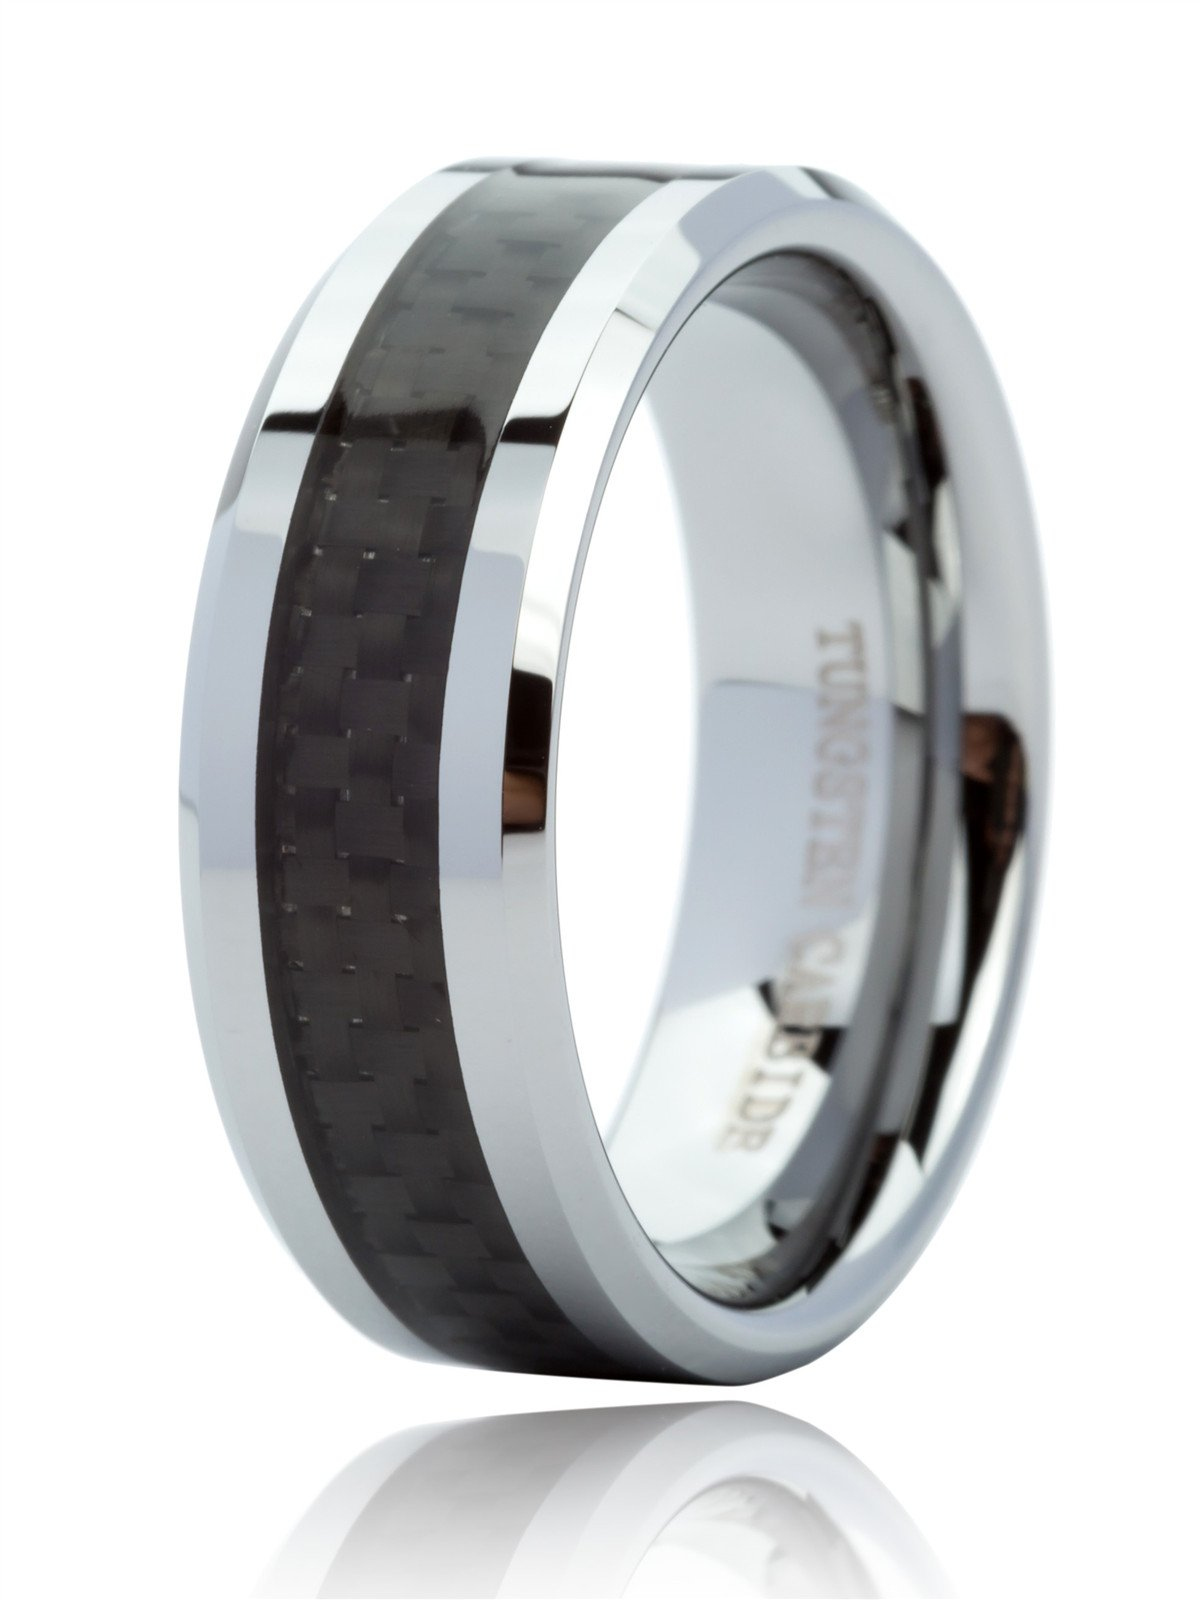 Just Lsy 8mm Tungsten Carbide Ring Black Carbon Fiber Inlay Wedding Band Comfort Fit Mens Womans Size 7.5 Lsy-014